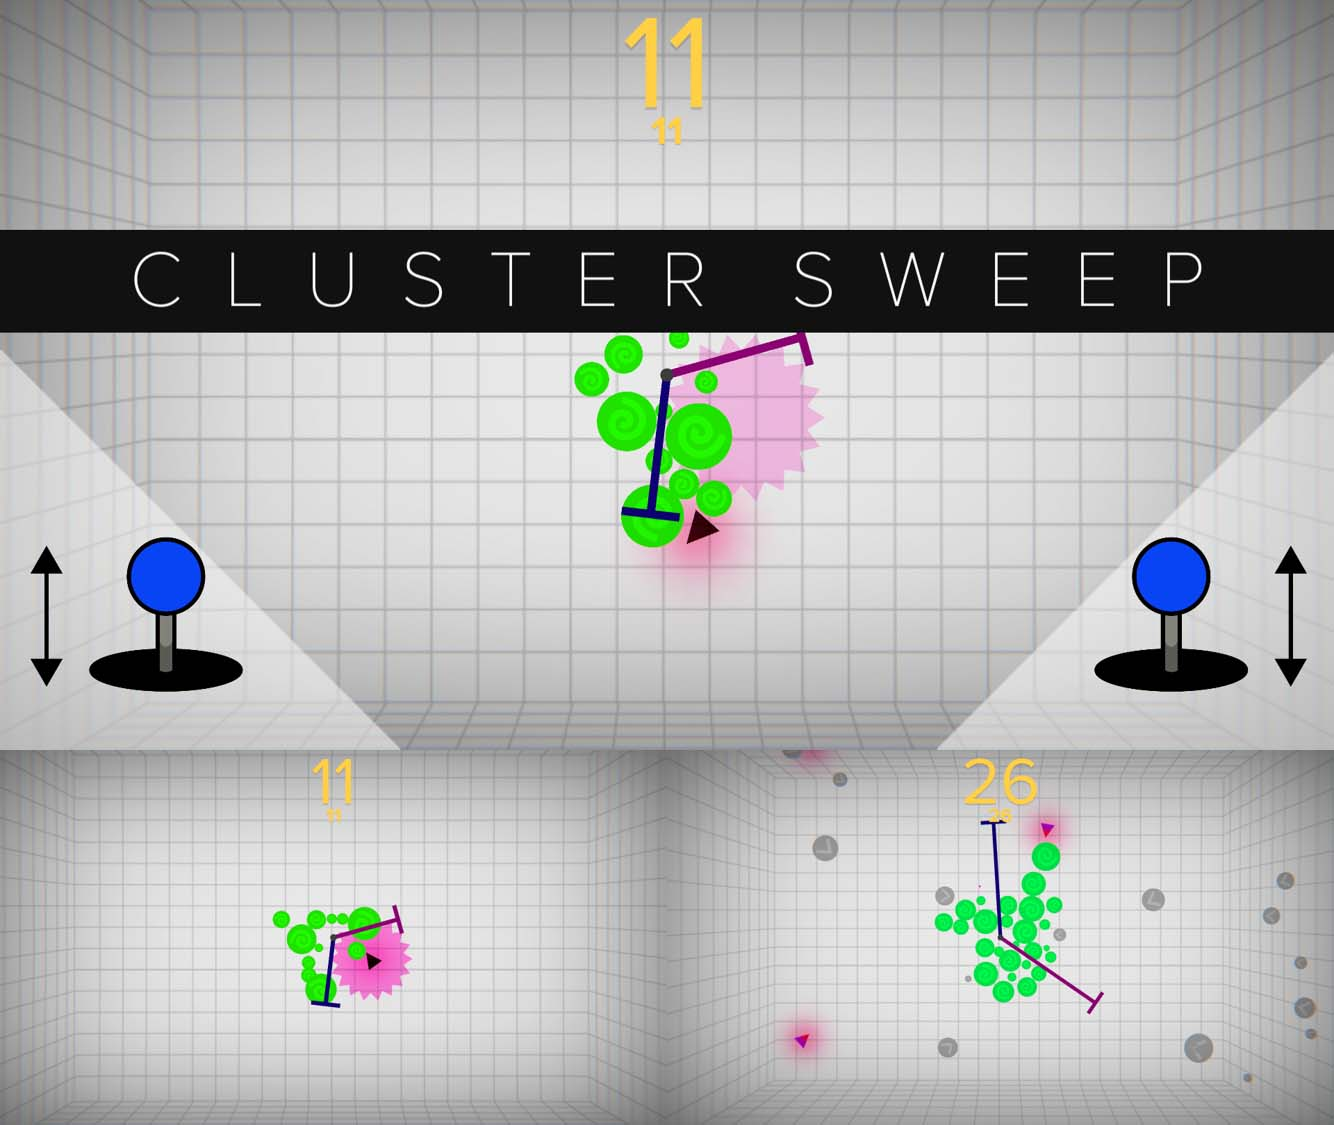 """Come play CLUSTER SWEEP created during """"The Indie Game Jam - Presented by Schick Hydro"""" at The Game Awards' first-ever arcade at the Microsoft Theater in LA on Dec. 7. Download at https://playcrafting.itch.io/ on Dec. 7."""